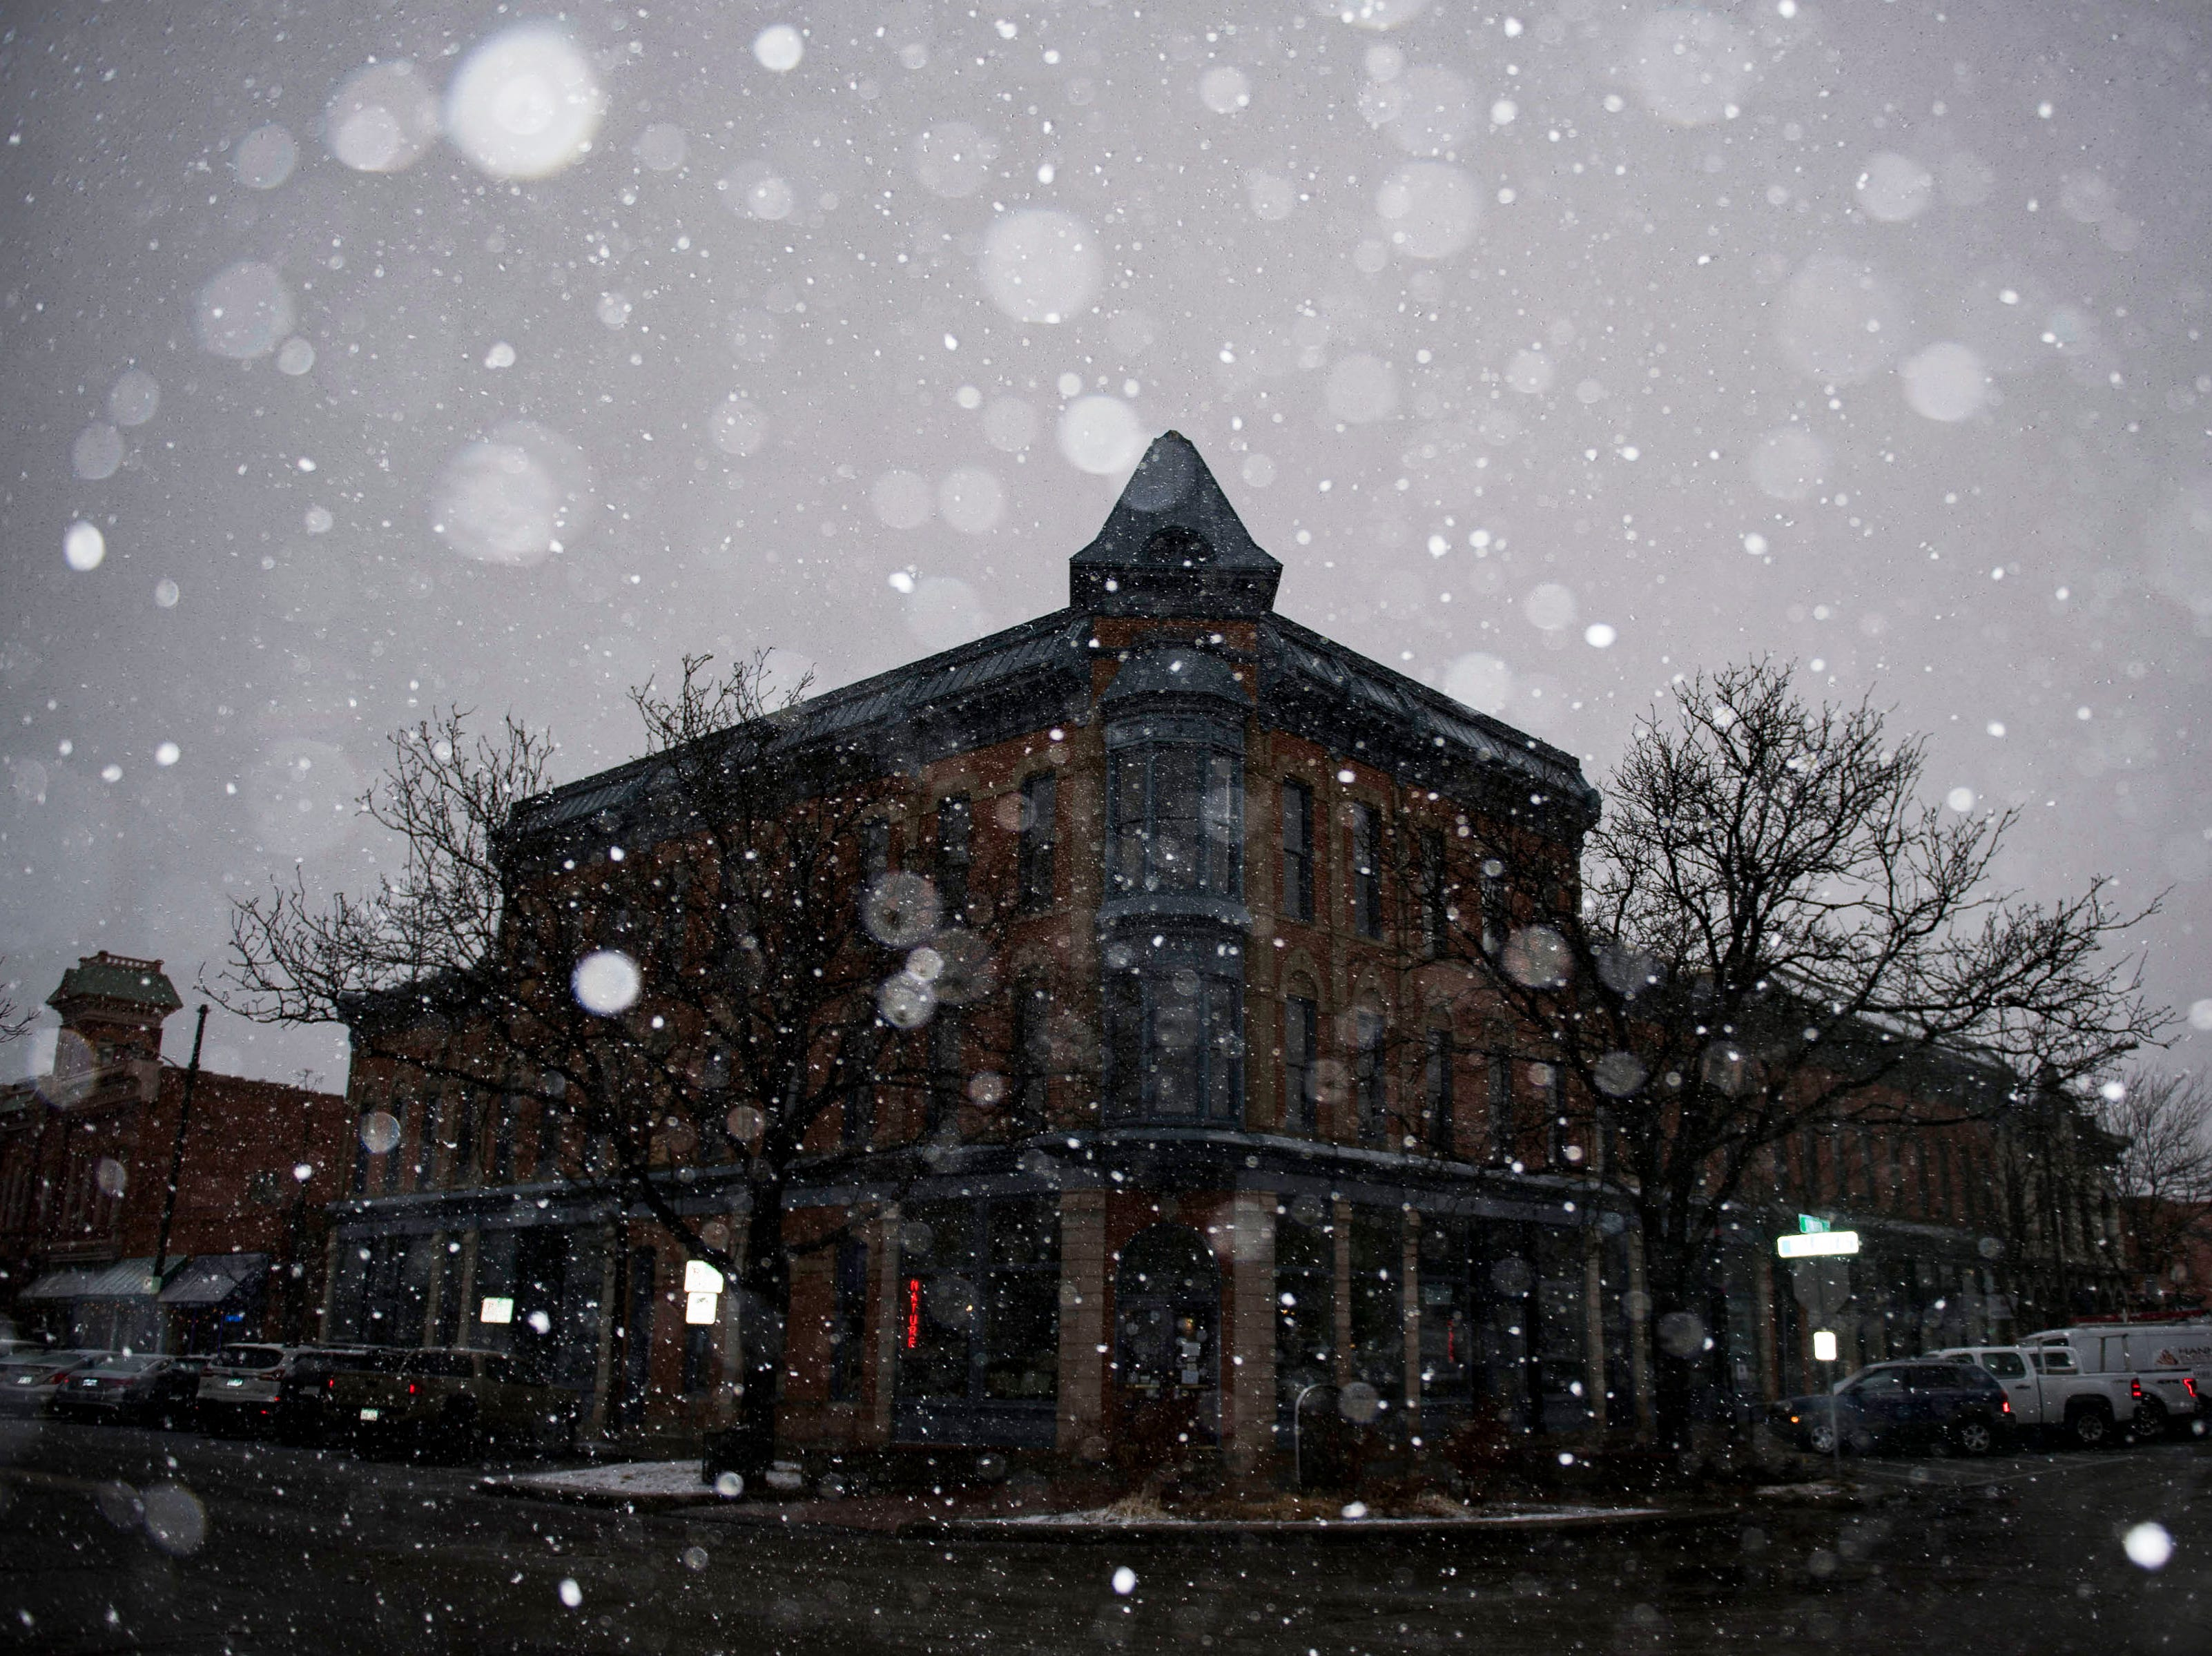 Snow falls in Old Town Square on Wednesday, March 13, 2019, in Fort Collins, Colo.